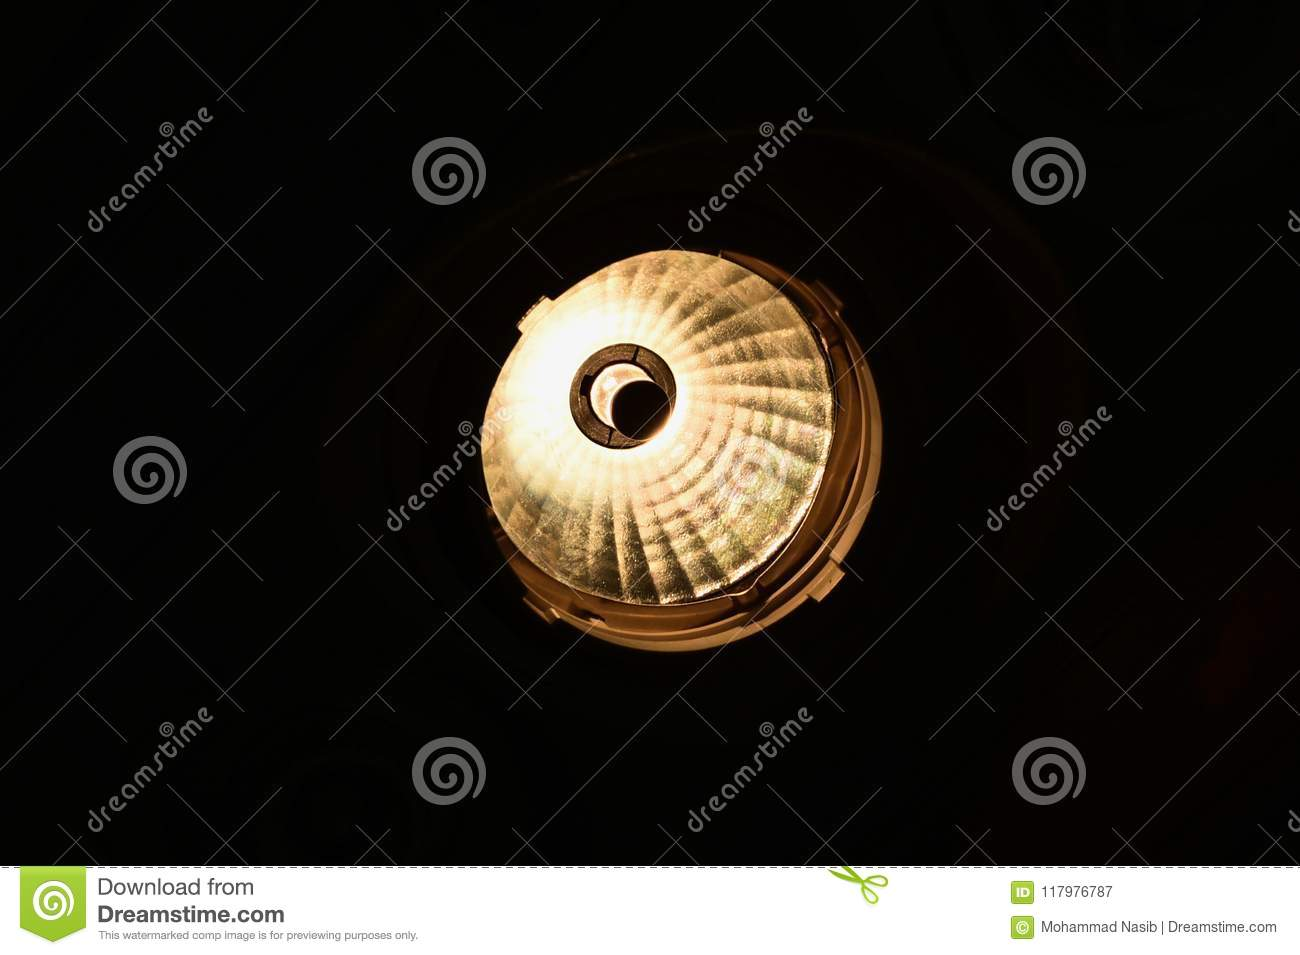 Download Beautiful Round Shape Interior Lights Unique Photo Stock Image - Image of lighting, isolated: 117976787